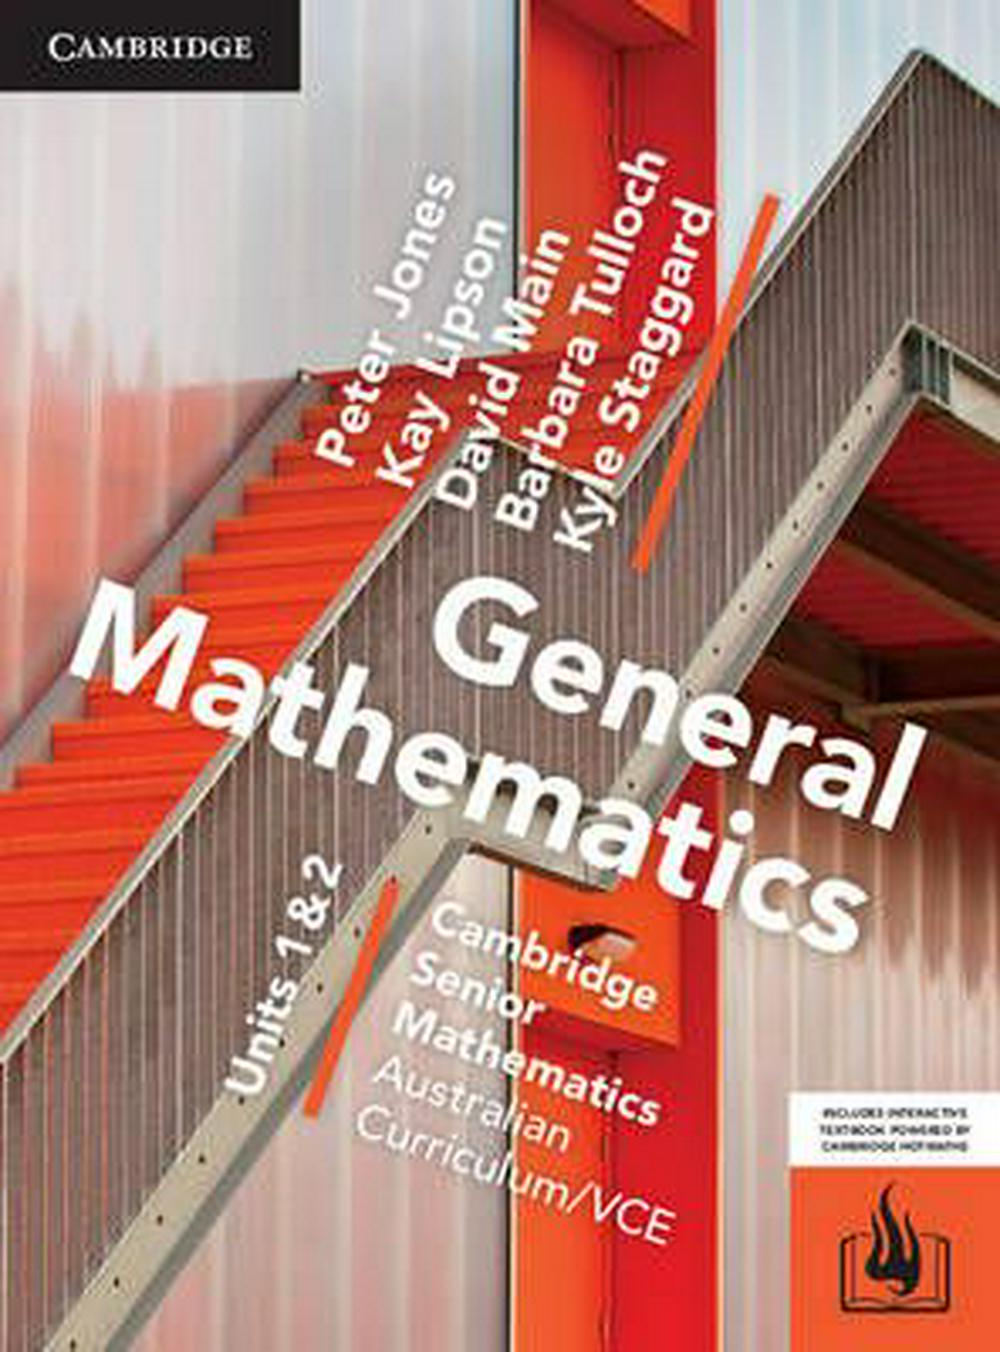 CSM VCE General Mathematics Units 1 and 2 Print Bundle (Textbook and Hotmaths) by Peter Jones,David Main,Kay Lipson,Barbara Tulloch,Kyle Staggard, ISBN: 9781107567559